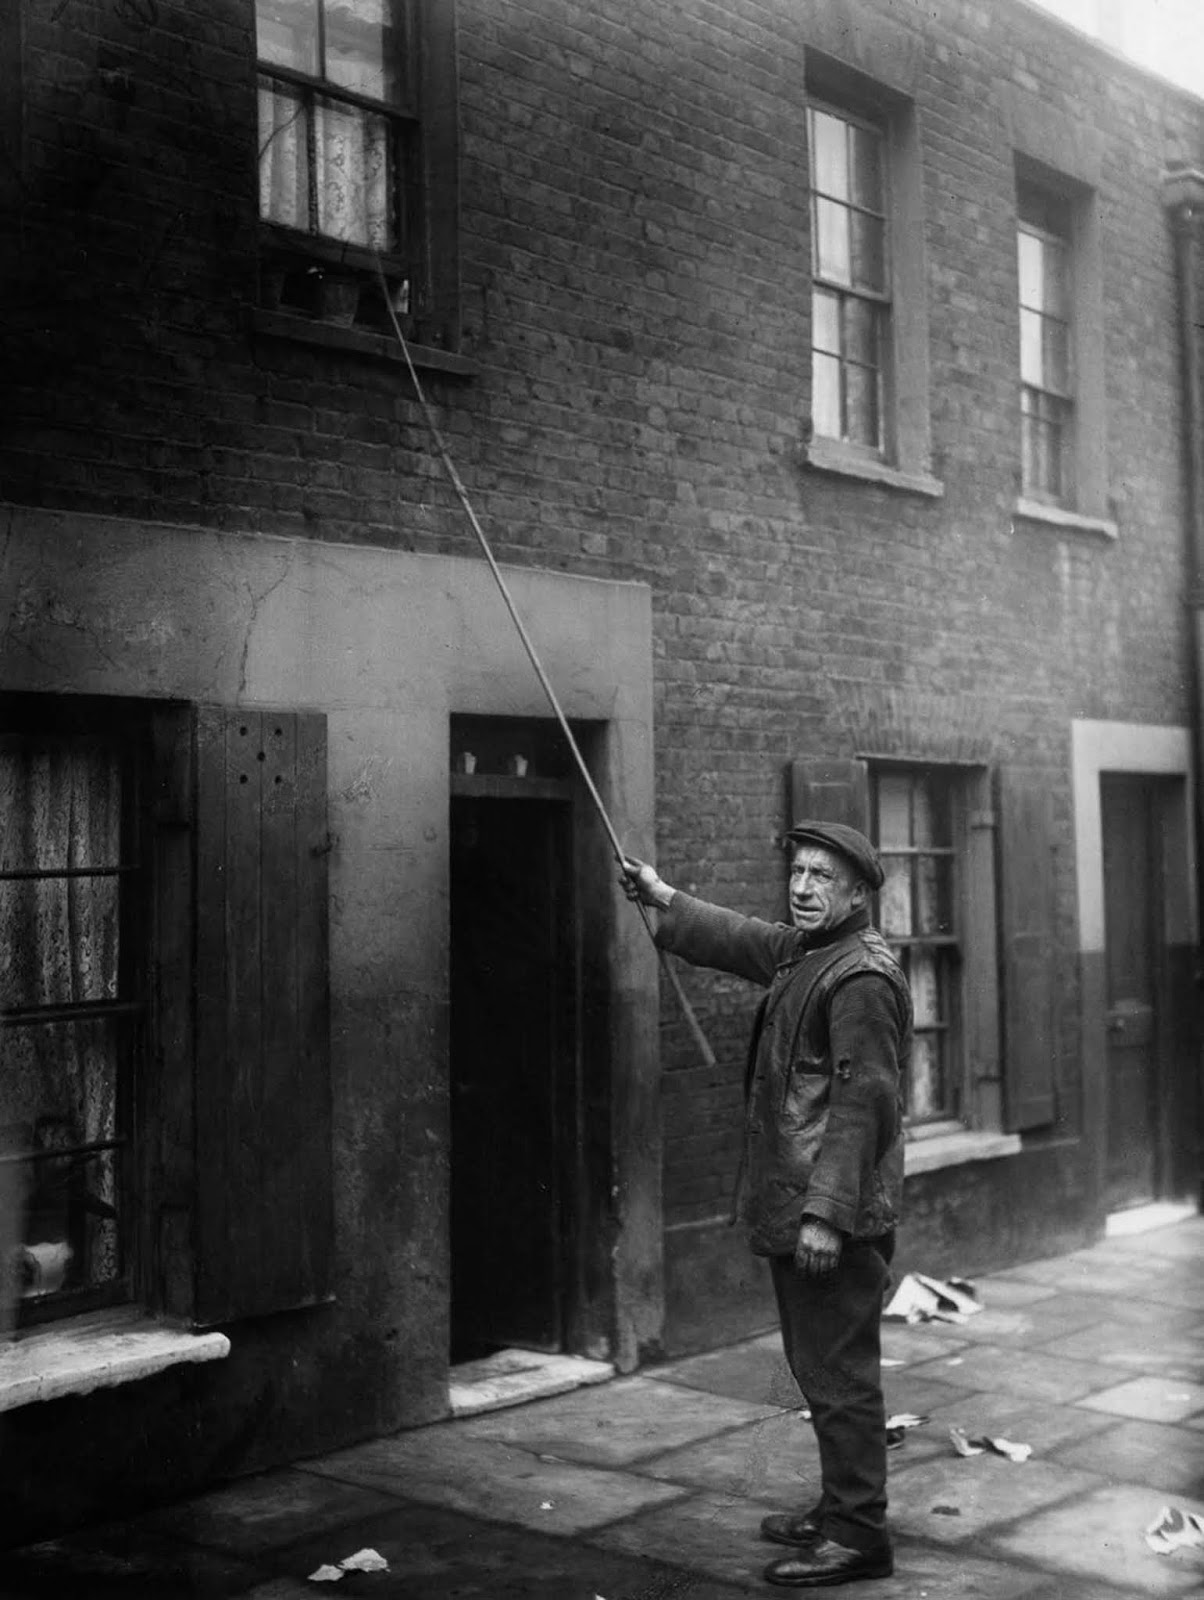 Charles Nelson of East London worked as a knocker-up for 25 years. He woke up early morning workers such as doctors, market traders and drivers. 1929.